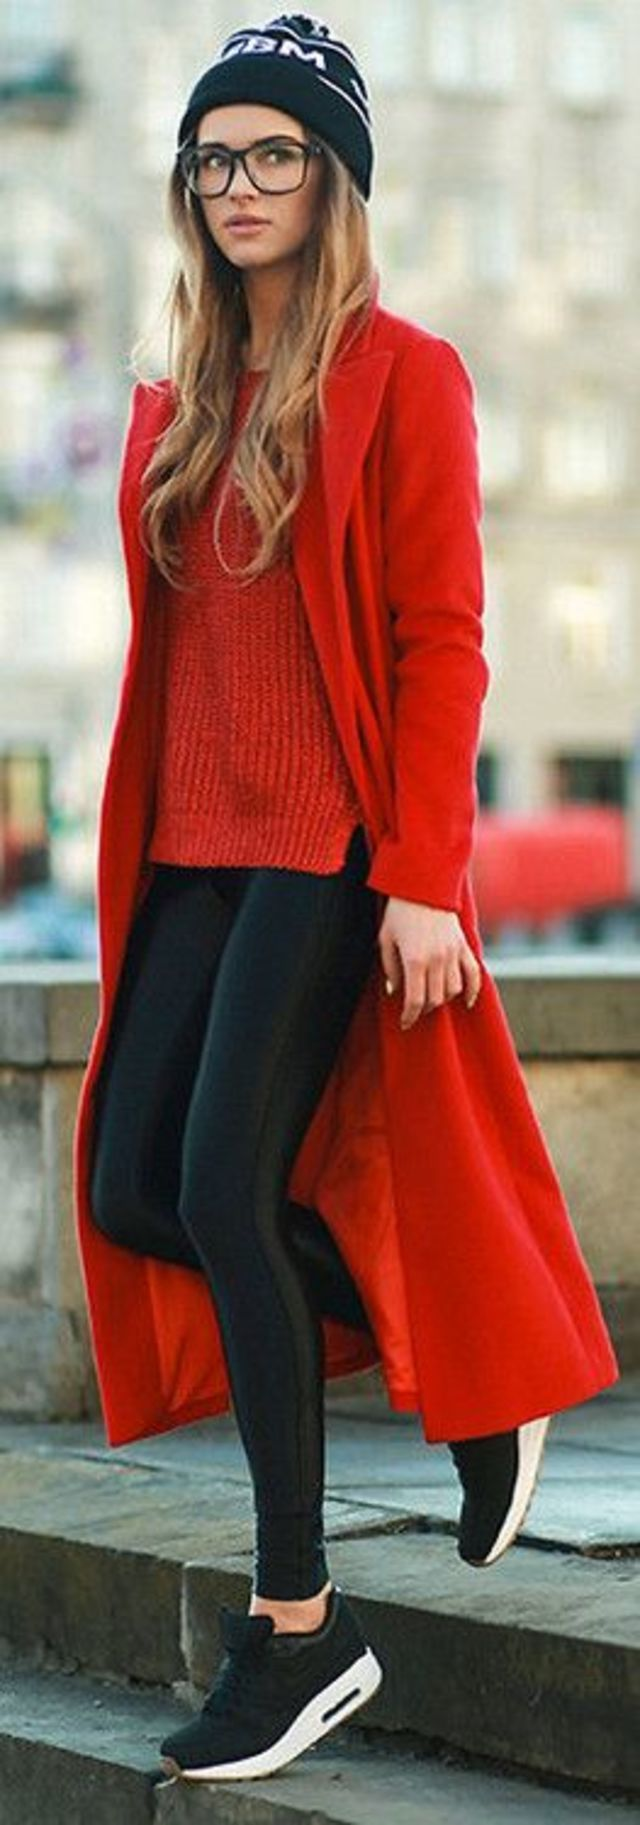 Best 25+ Red outfits ideas on Pinterest | Women\u0027s red outfits, Red ...